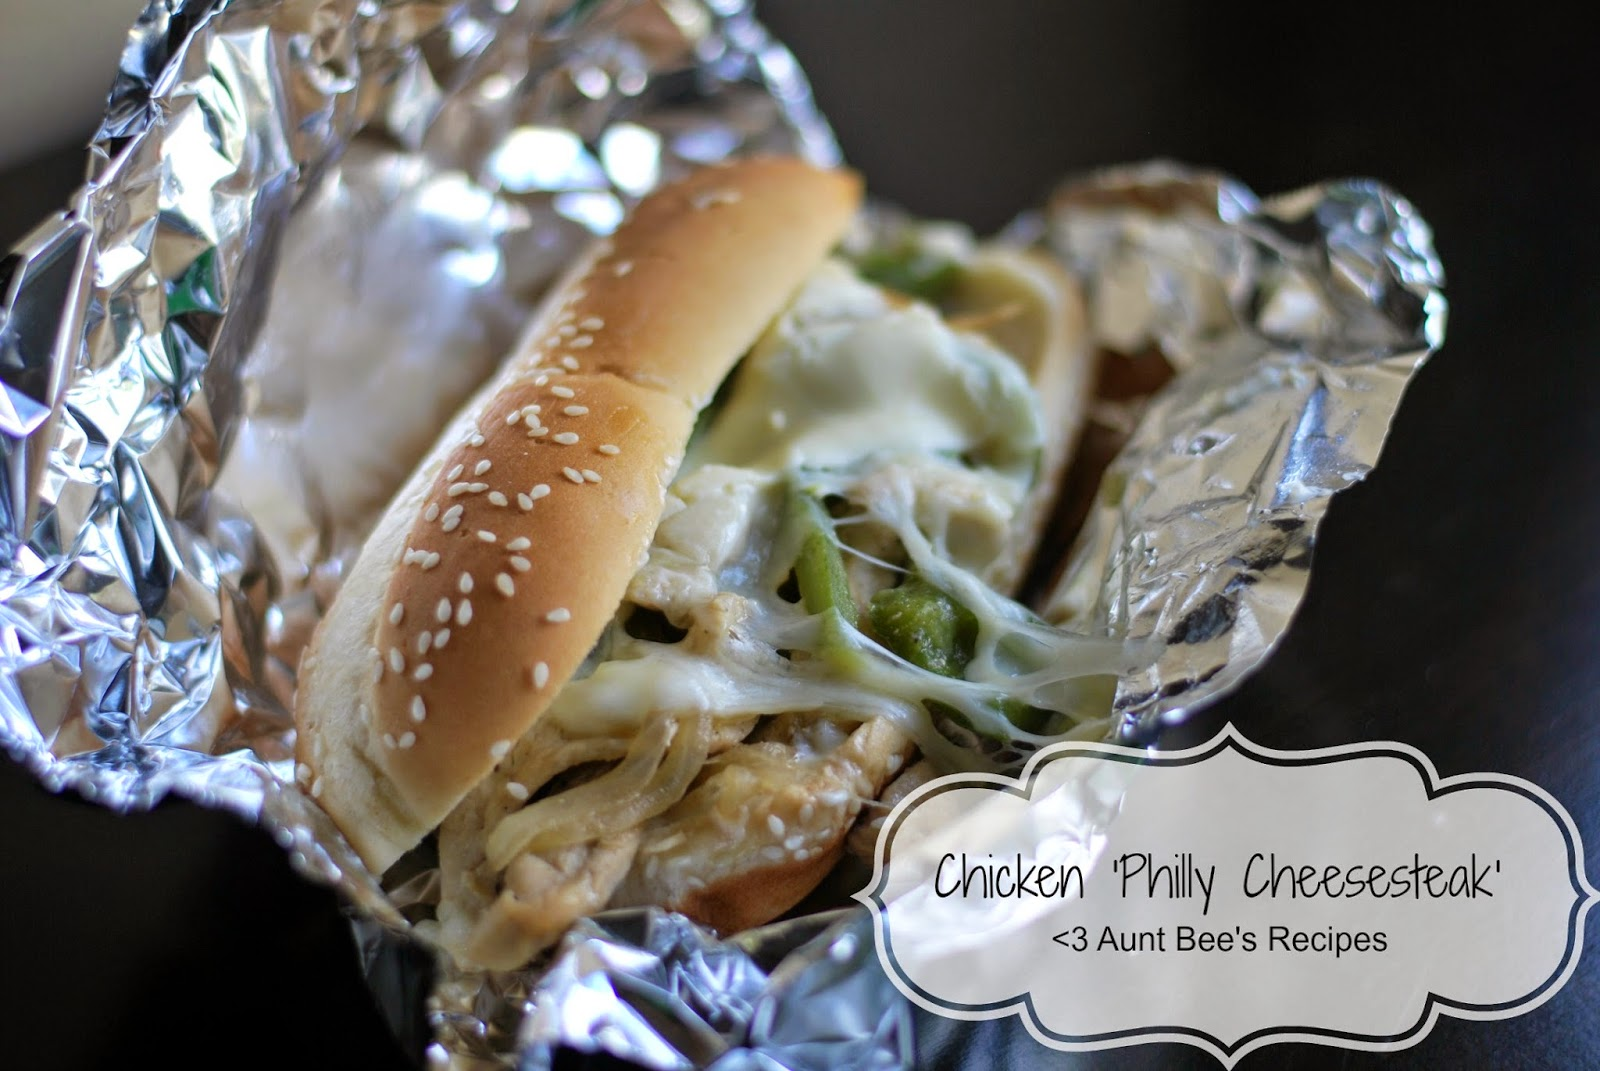 Chicken 'Philly Cheese Steak' | Aunt Bee's Recipes